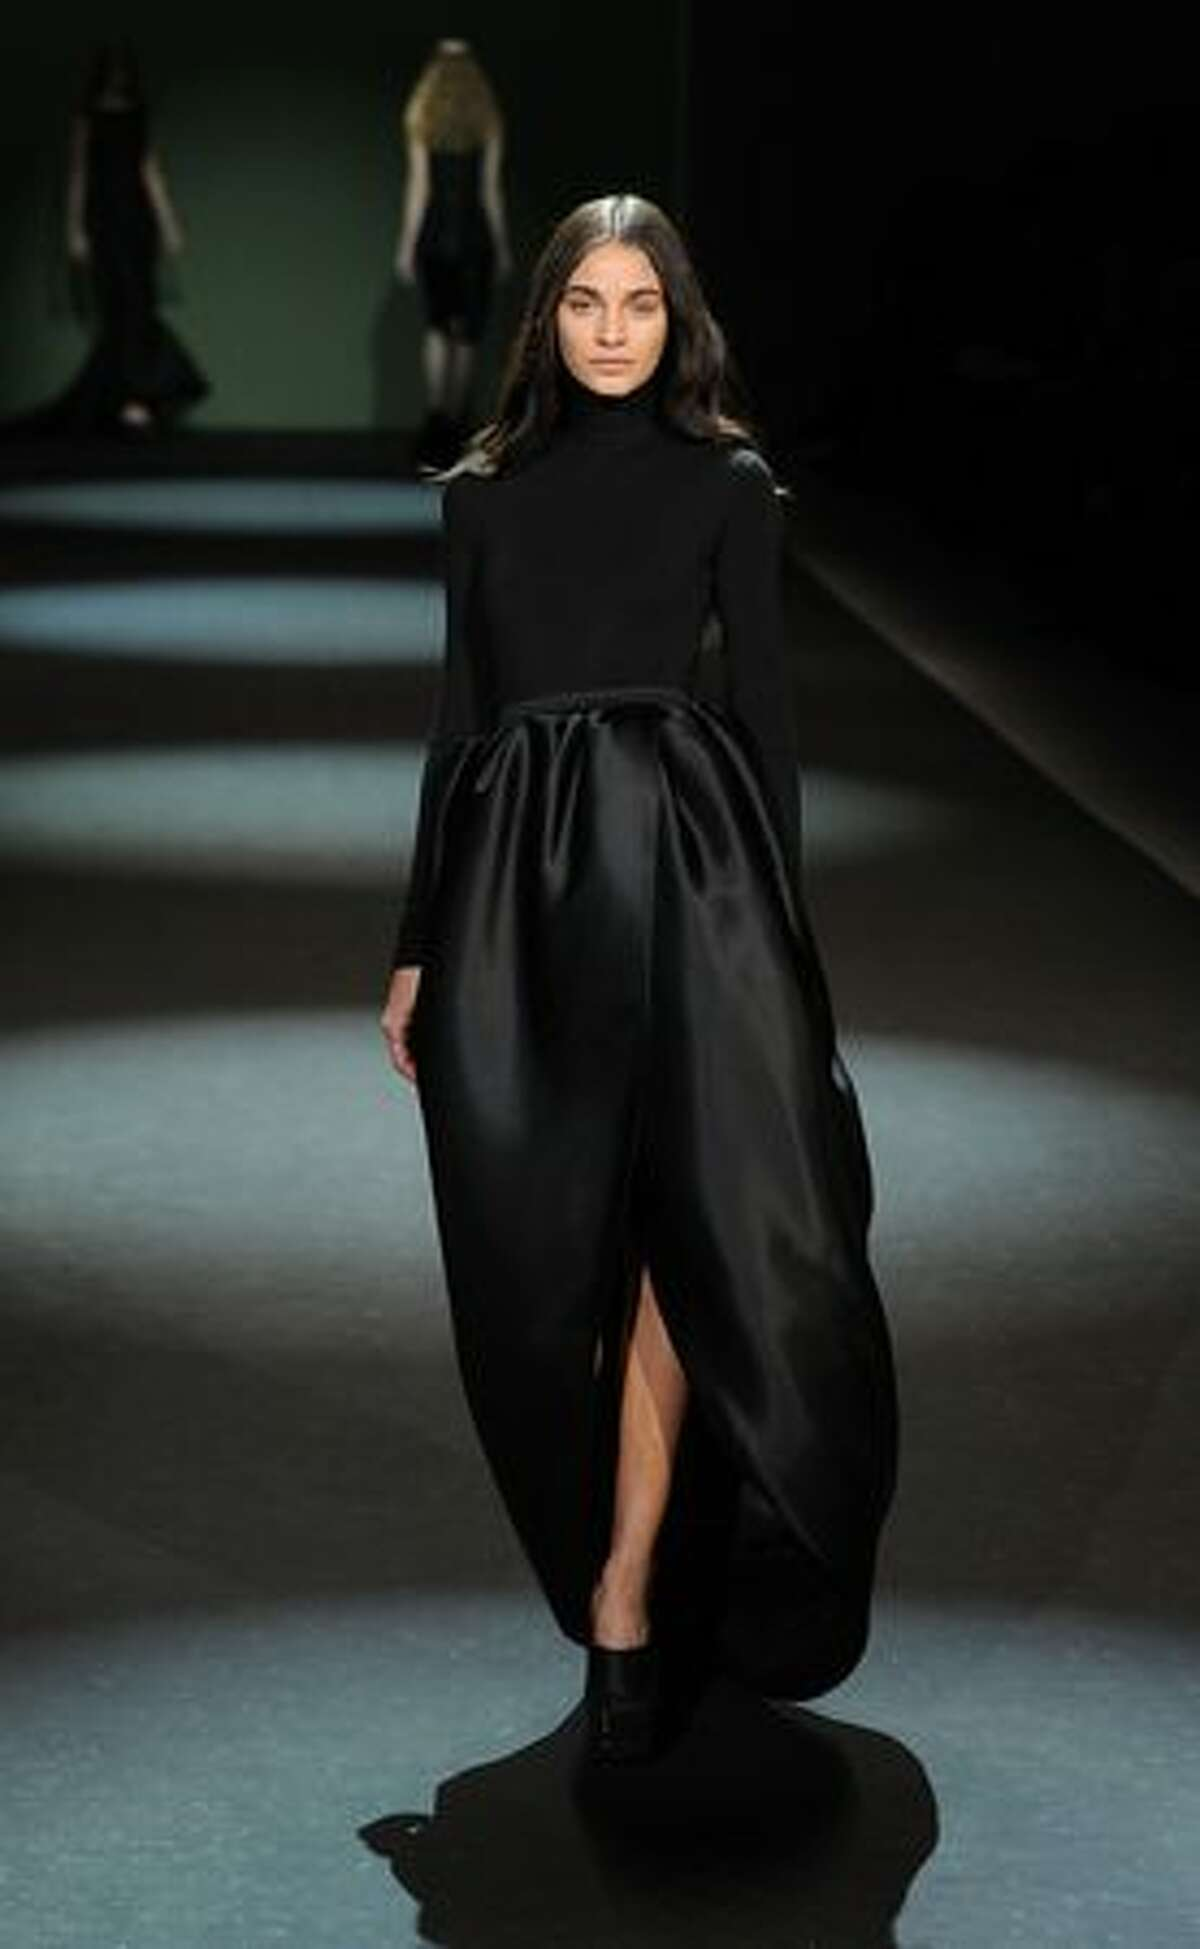 A model walks the runway at the Christian Siriano show.